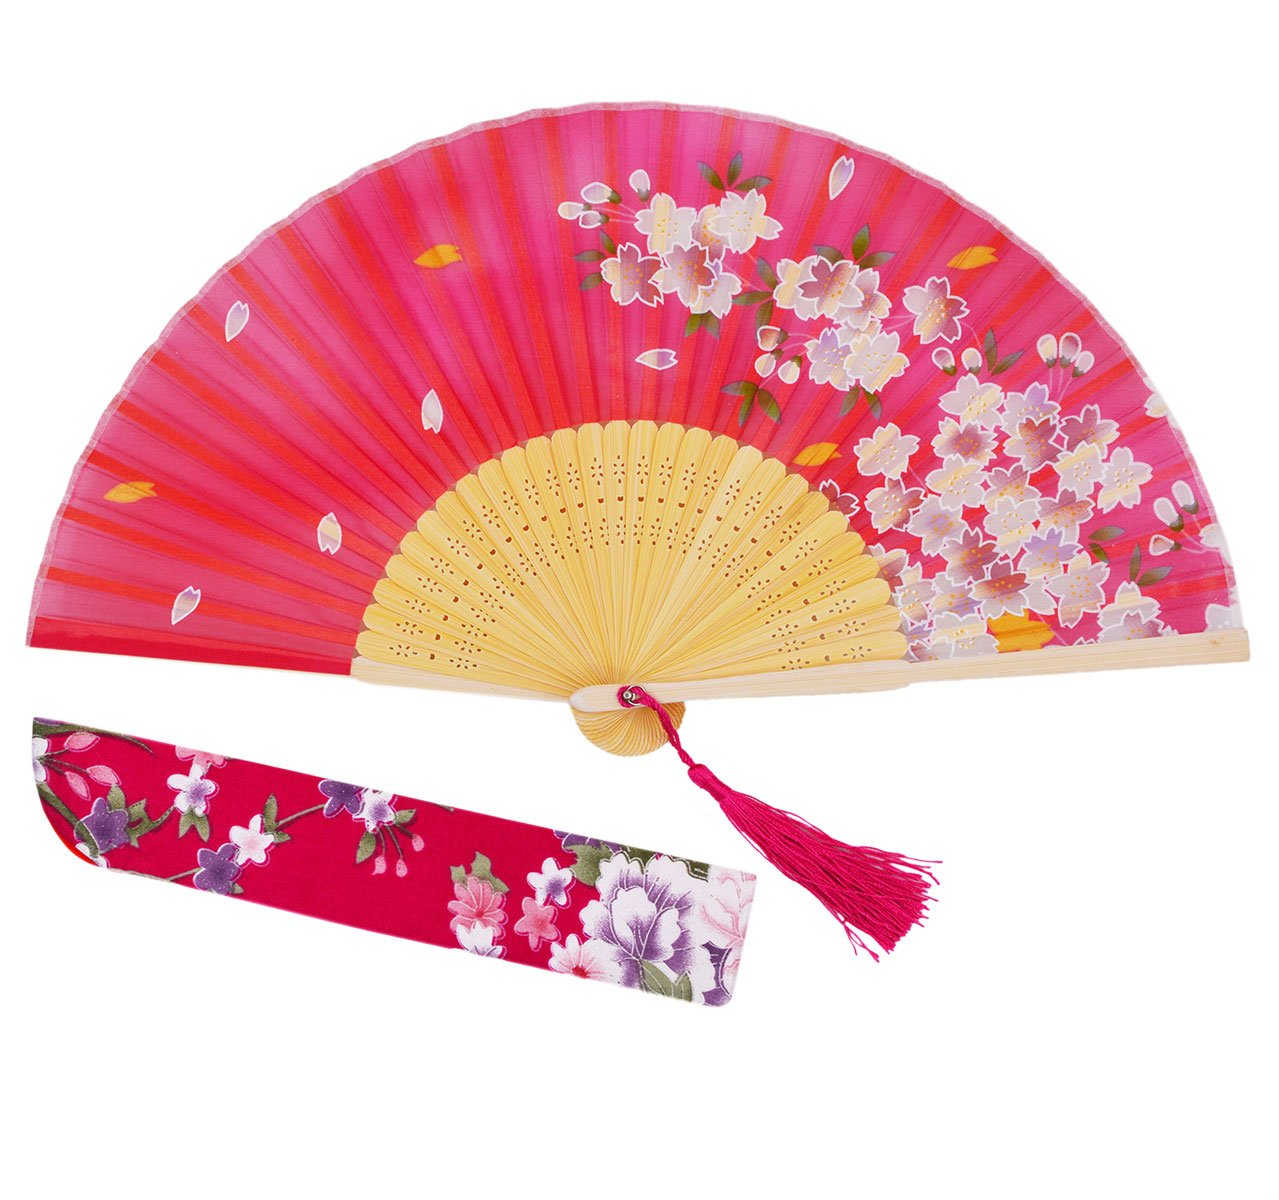 Meifan Chinese Japanese Women Hand Held Folding Fans With Bamboo Frame (Red)